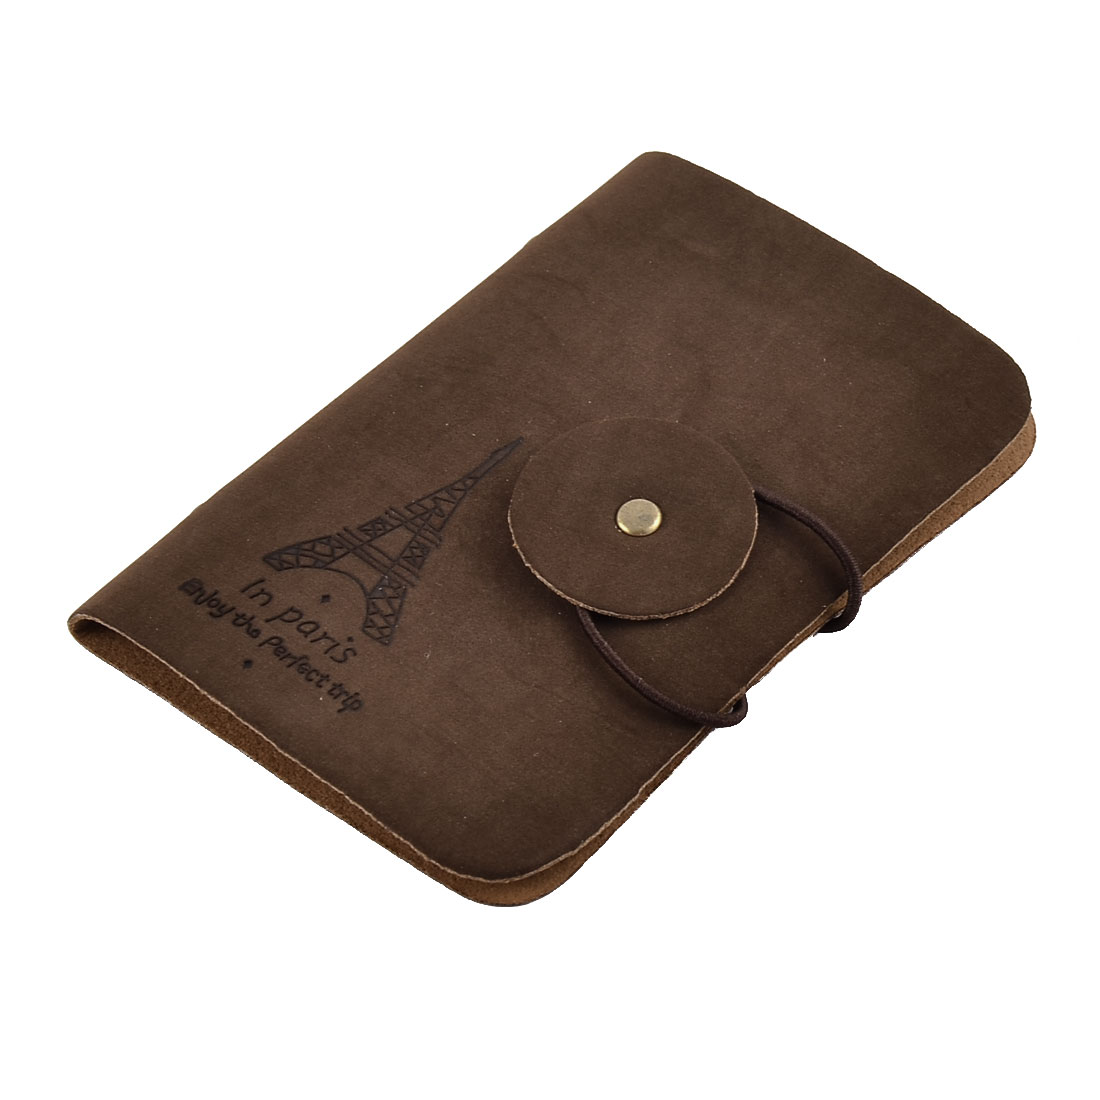 Unique Bargains Outdoor Travel Faux Leather Name Credit ID Card Holder Pocket Container Coffee